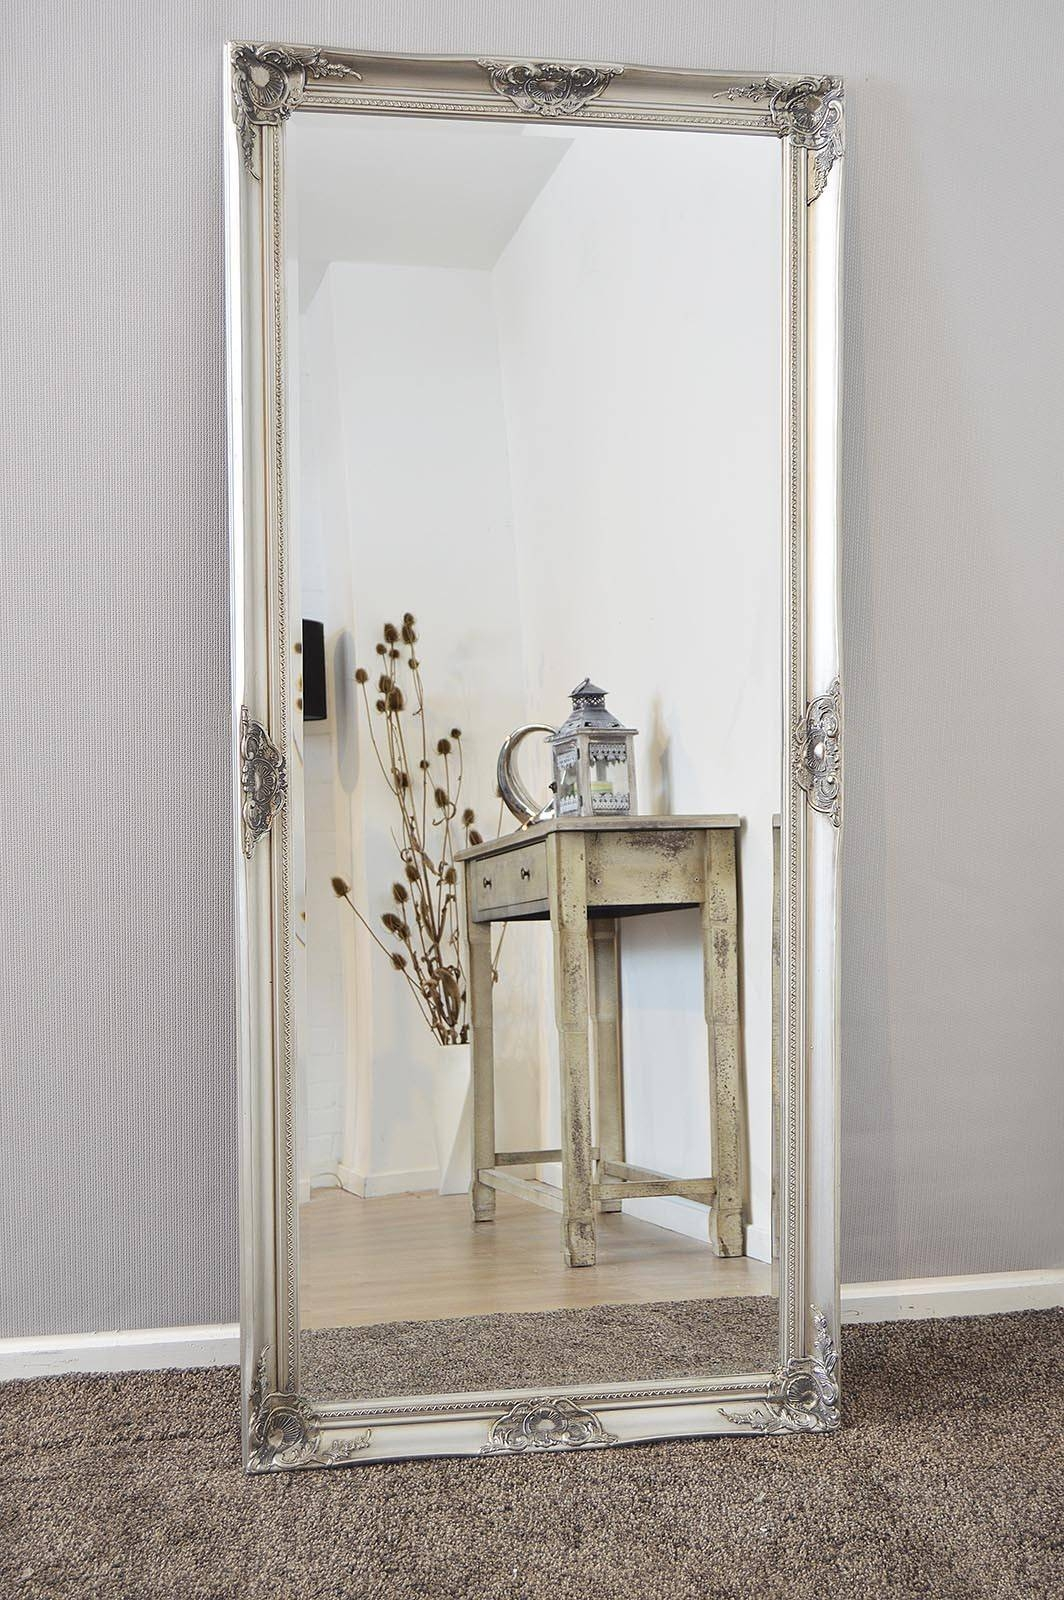 Shabby Chic Wall Mirror 88 Stunning Decor With Large Antique throughout Ornate Silver Mirrors (Image 22 of 25)